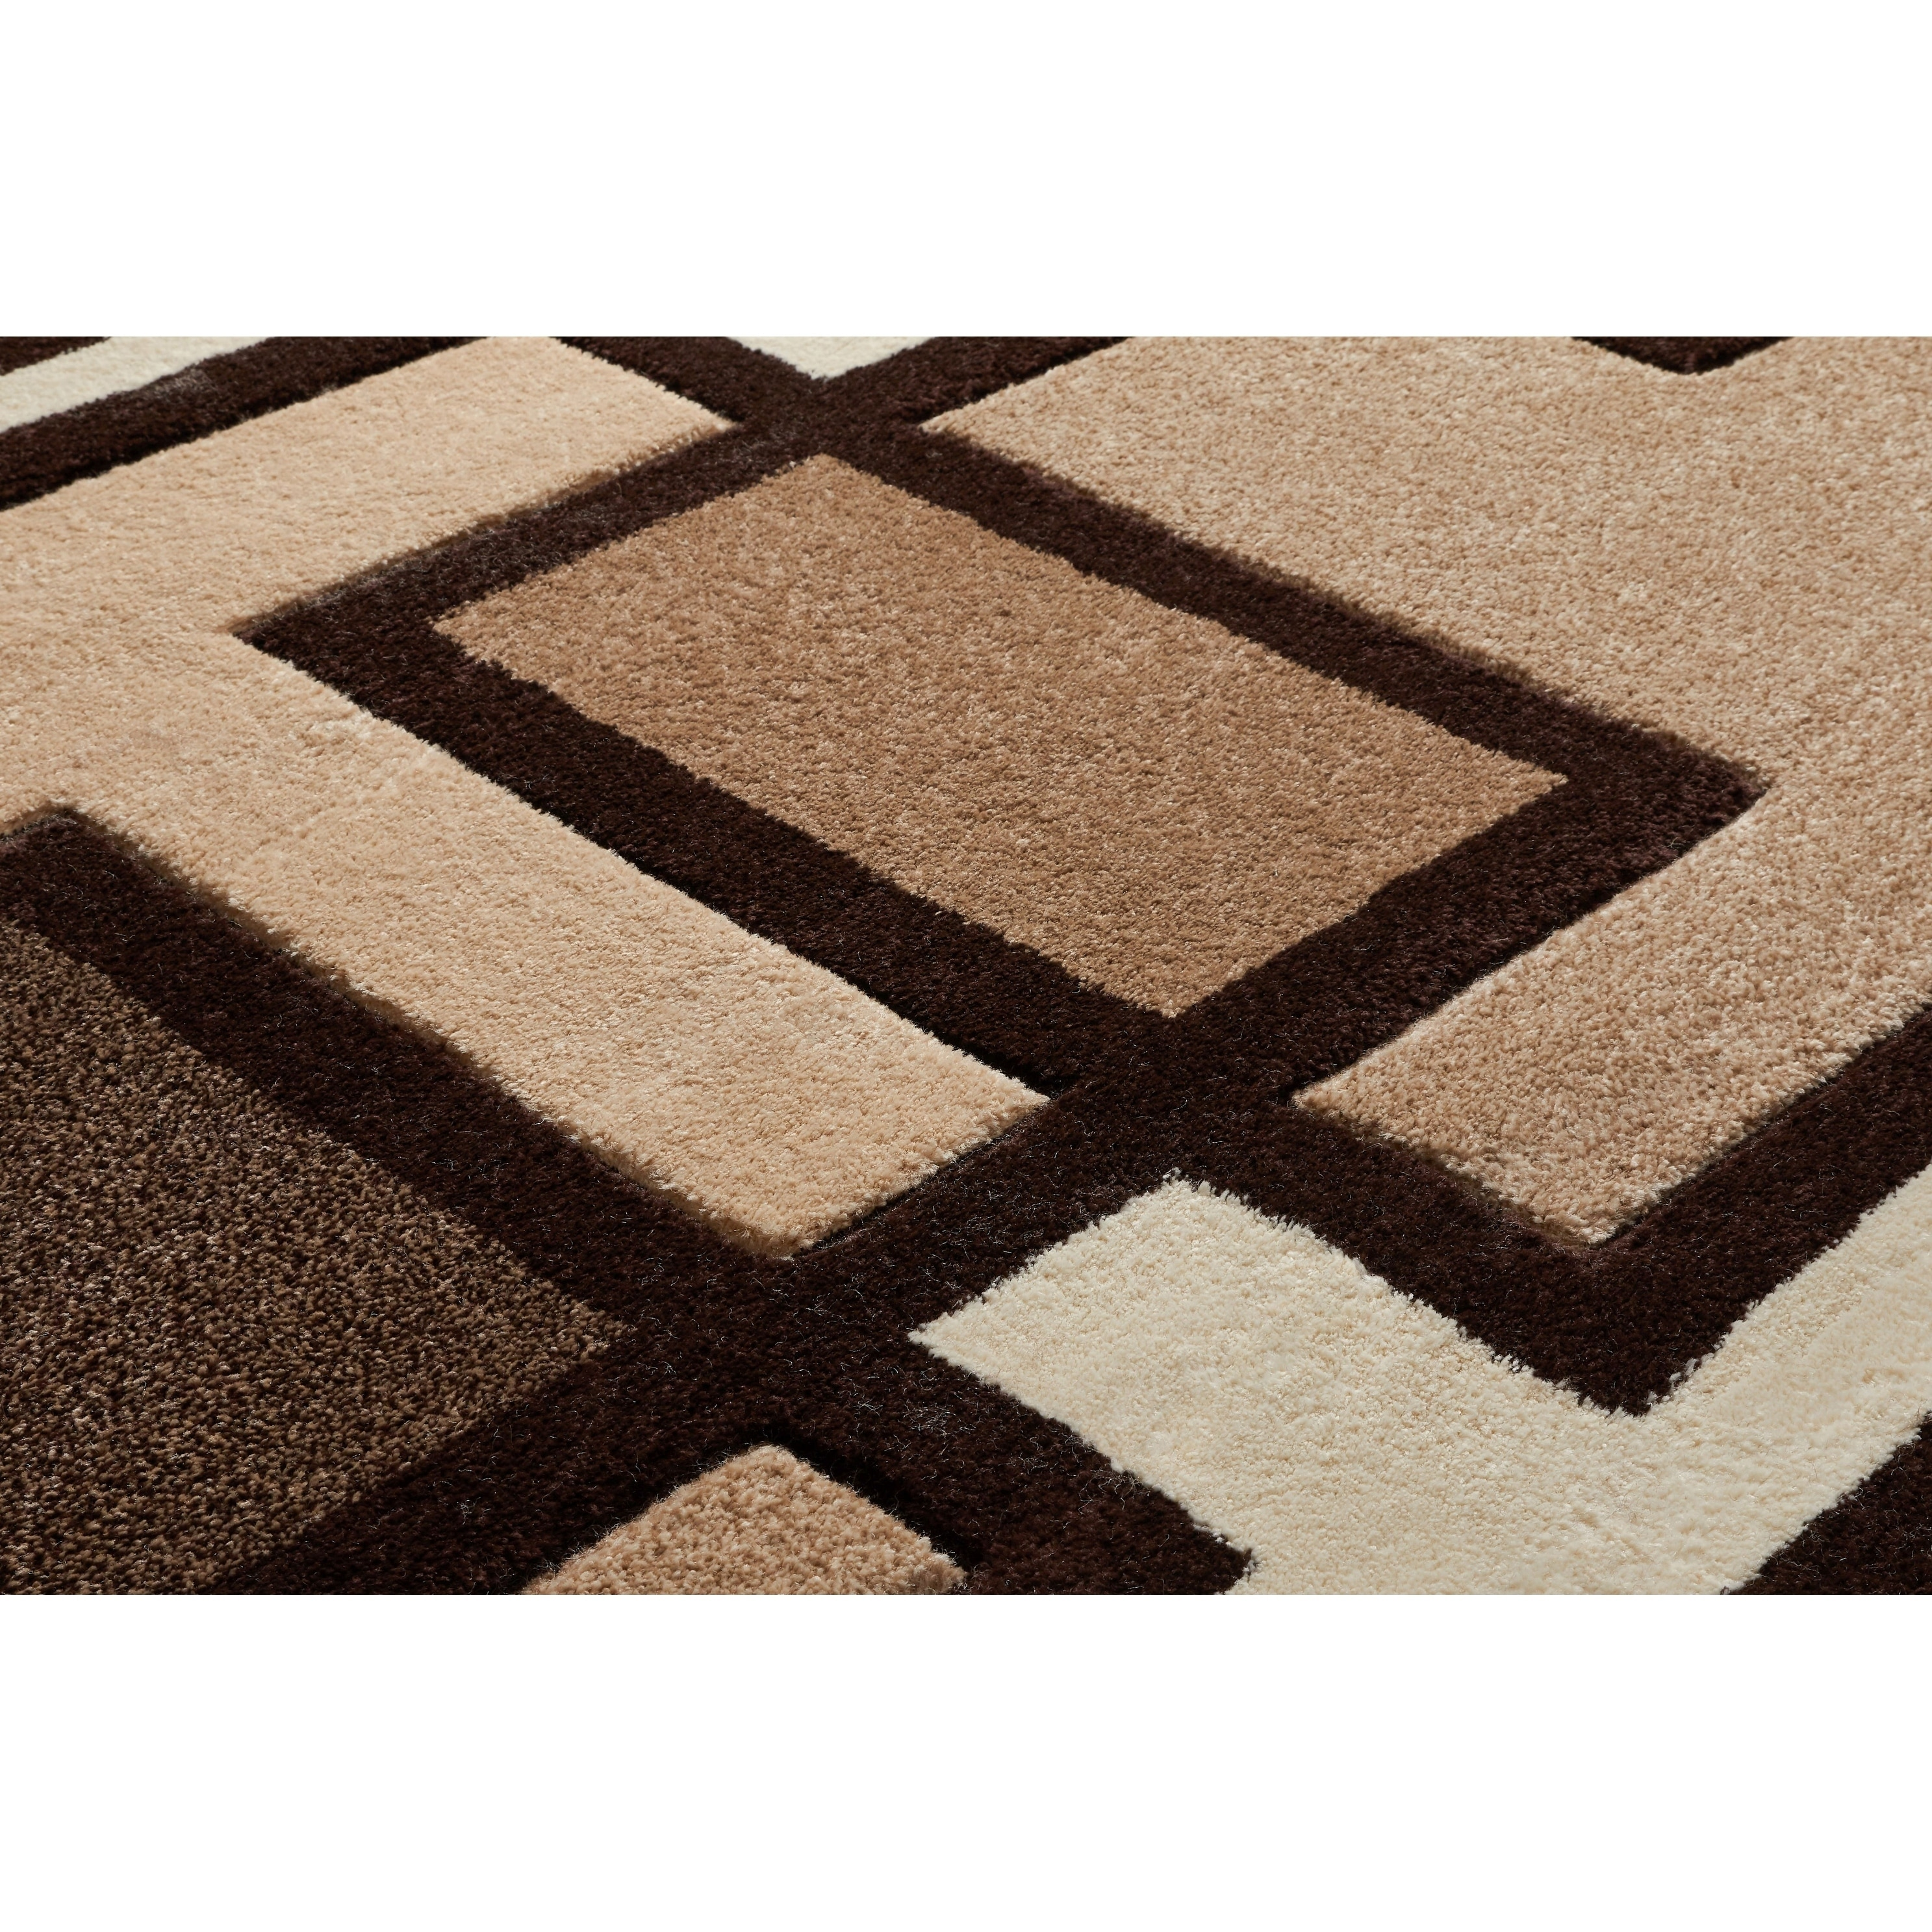 Well Woven Imagine Geometric Squares Modern Beige Brown Ivory Soft Plush Area Rug 5 3 X 7 3 Overstock 8854948